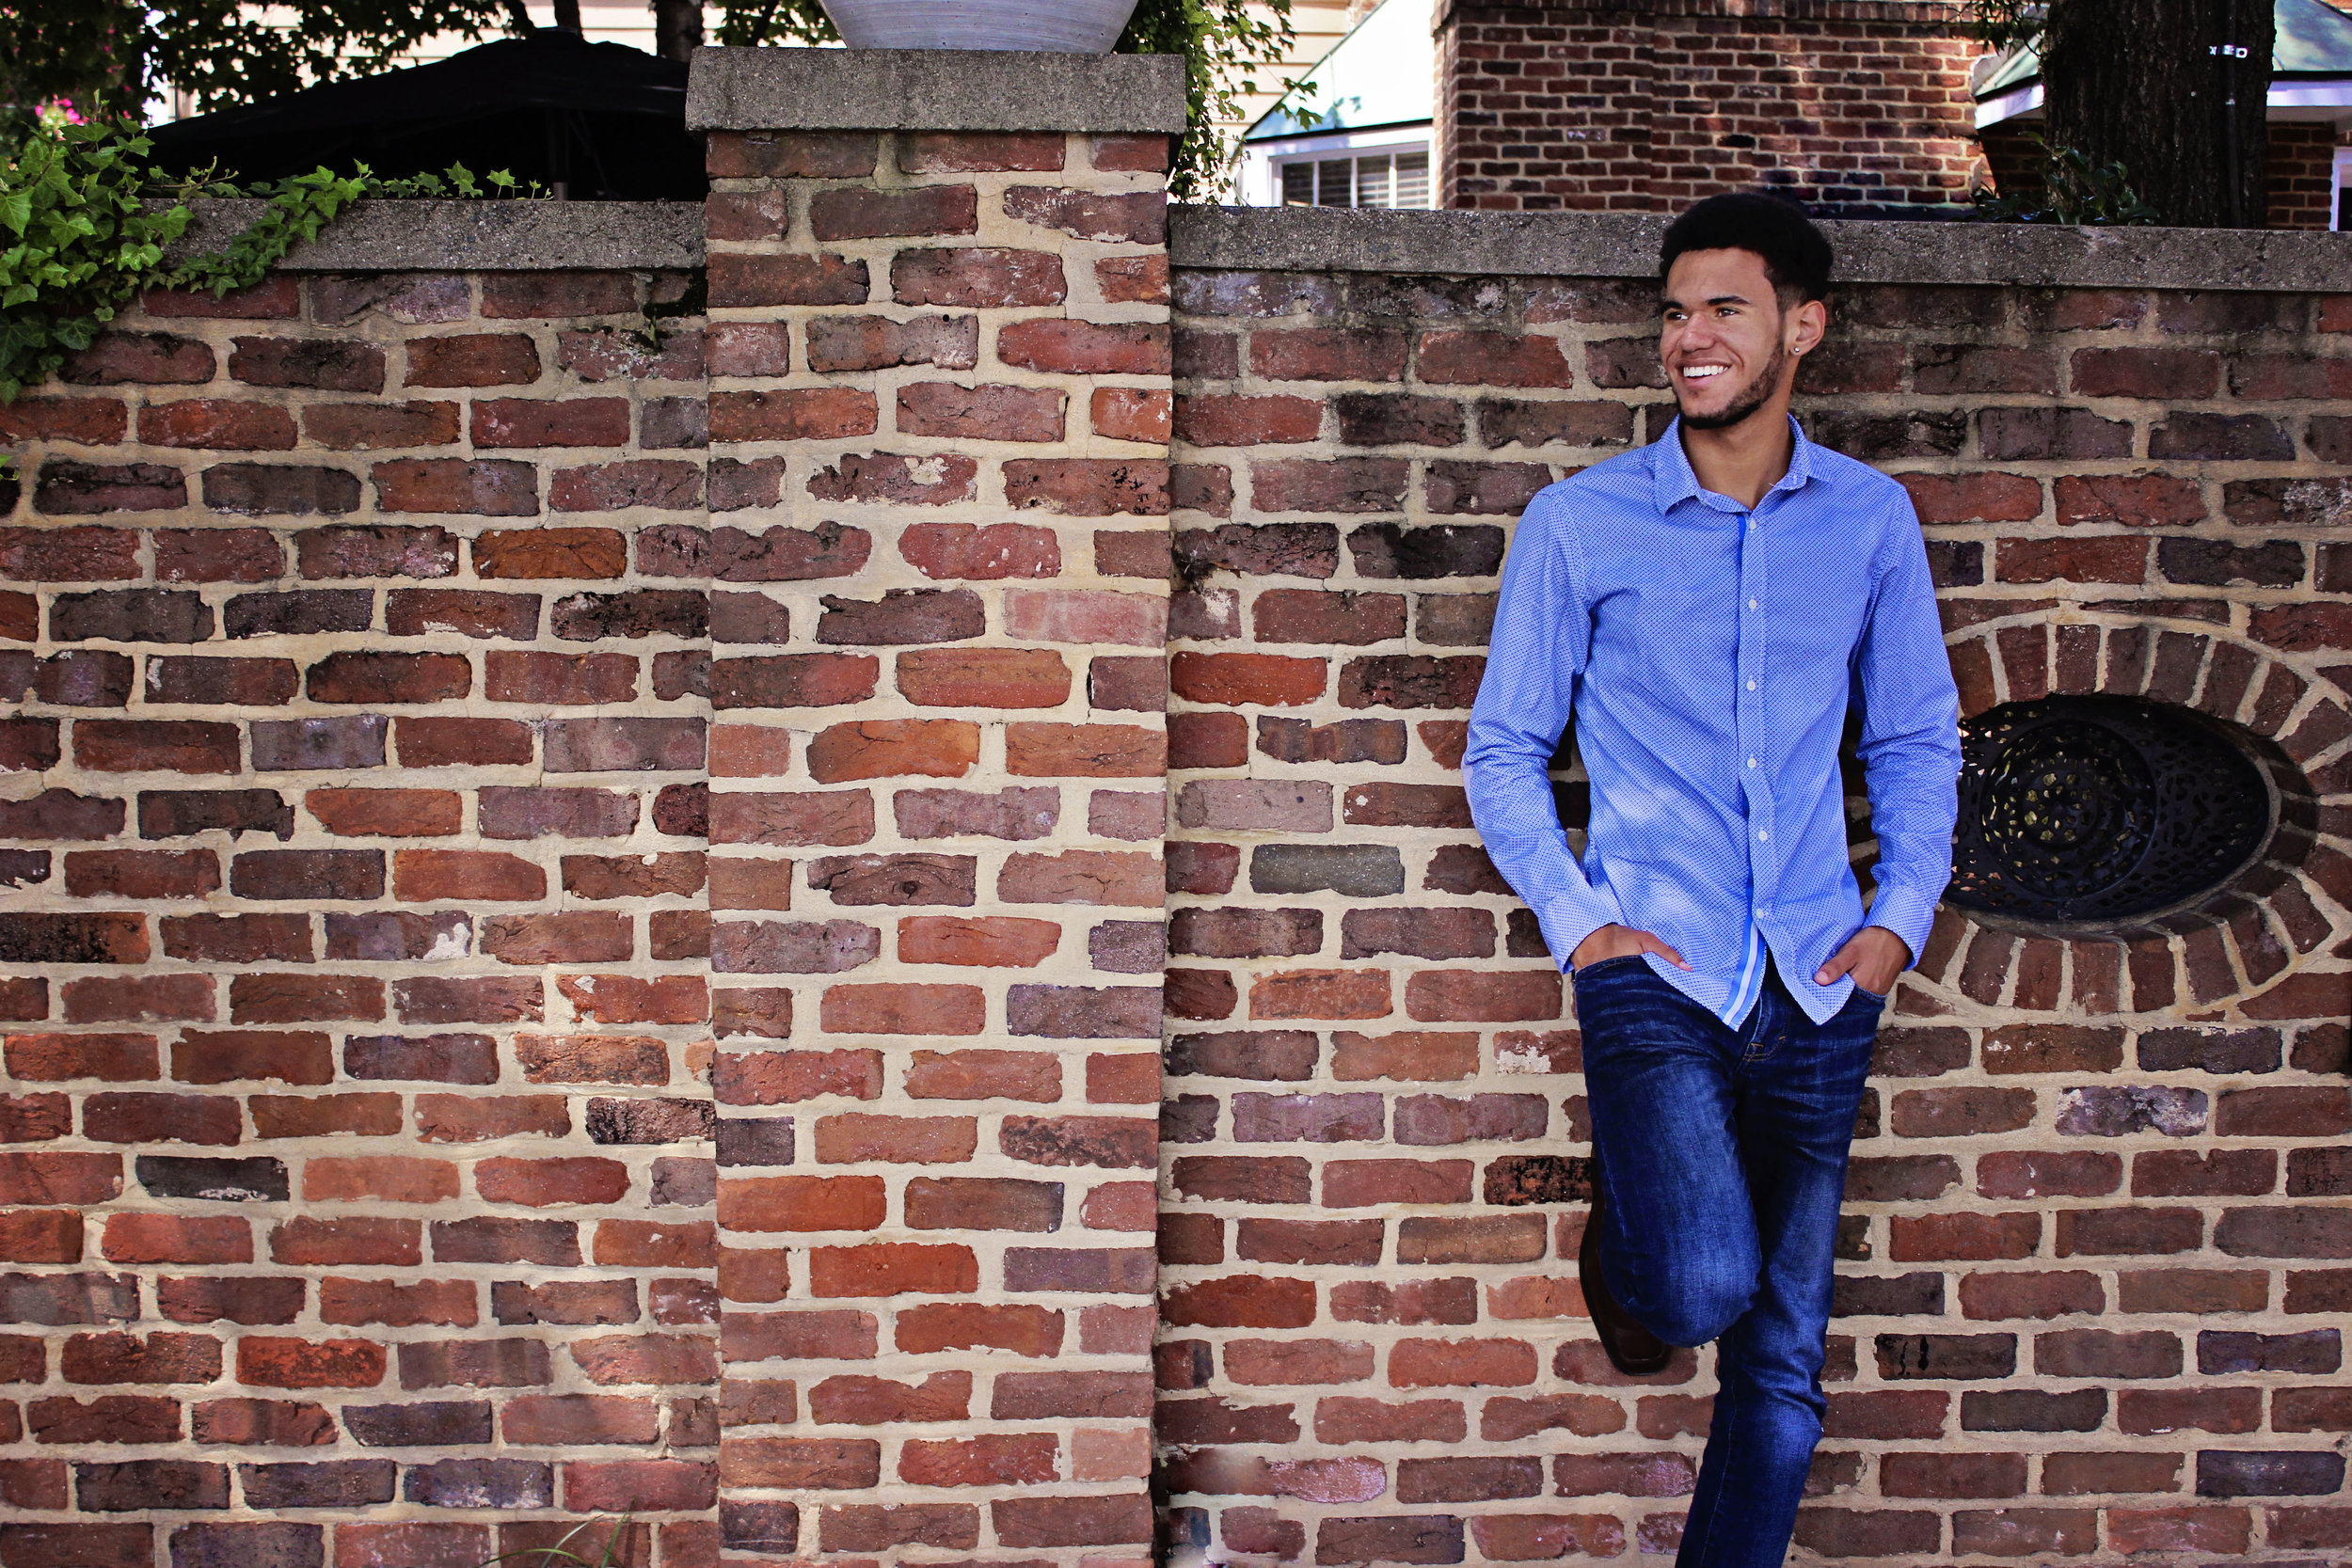 Cam on Brick wall Smile-2.jpg